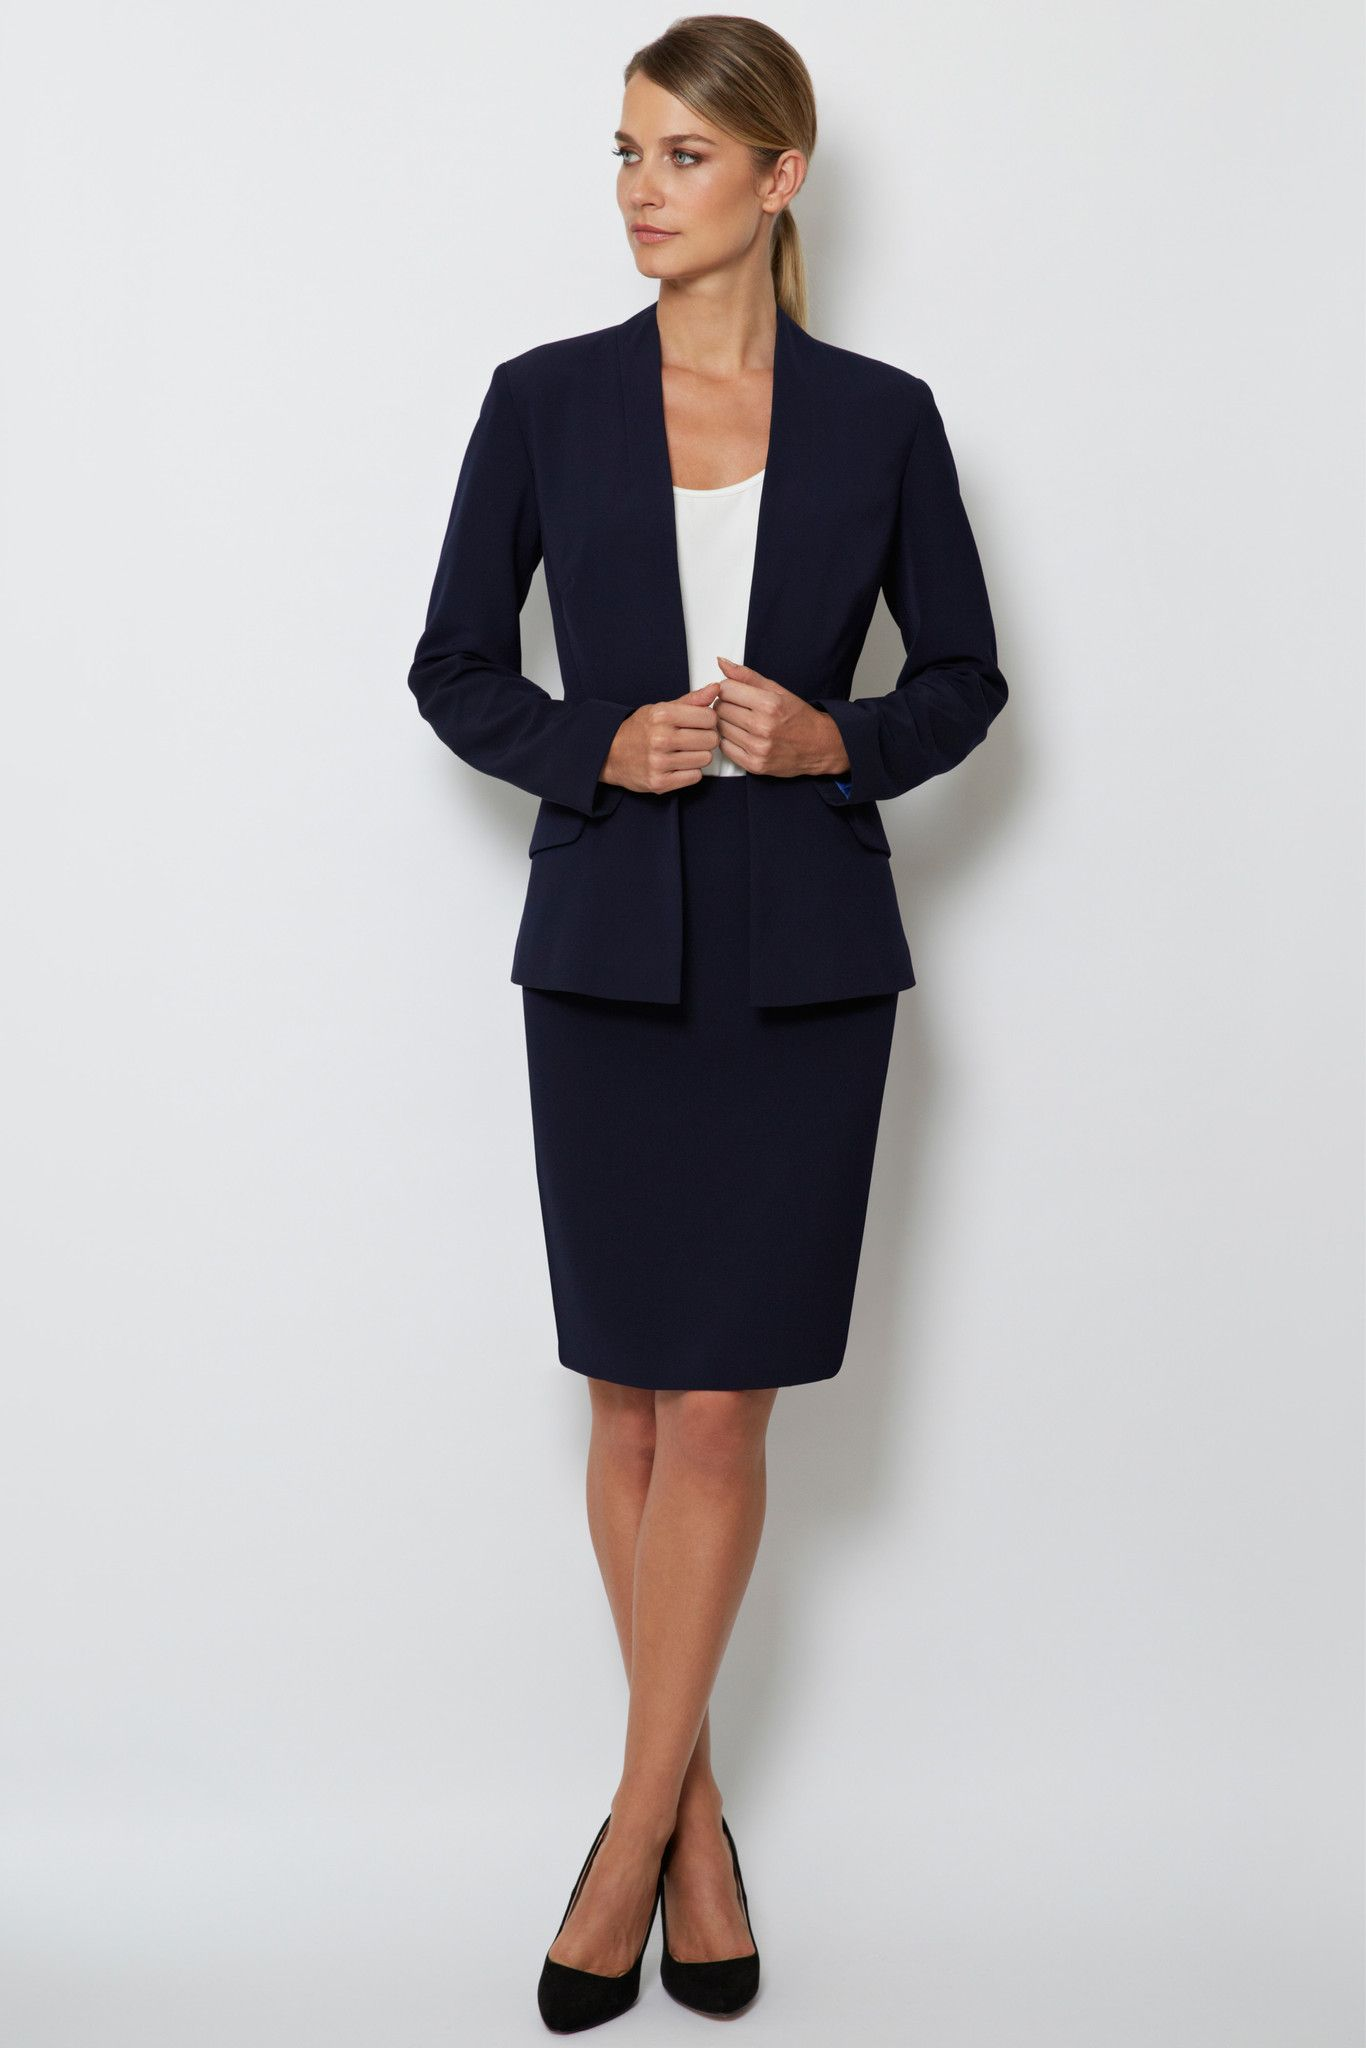 Westminster_Navy_Front_business-suit-womens.jpg 1,366×2,048 pixels ...